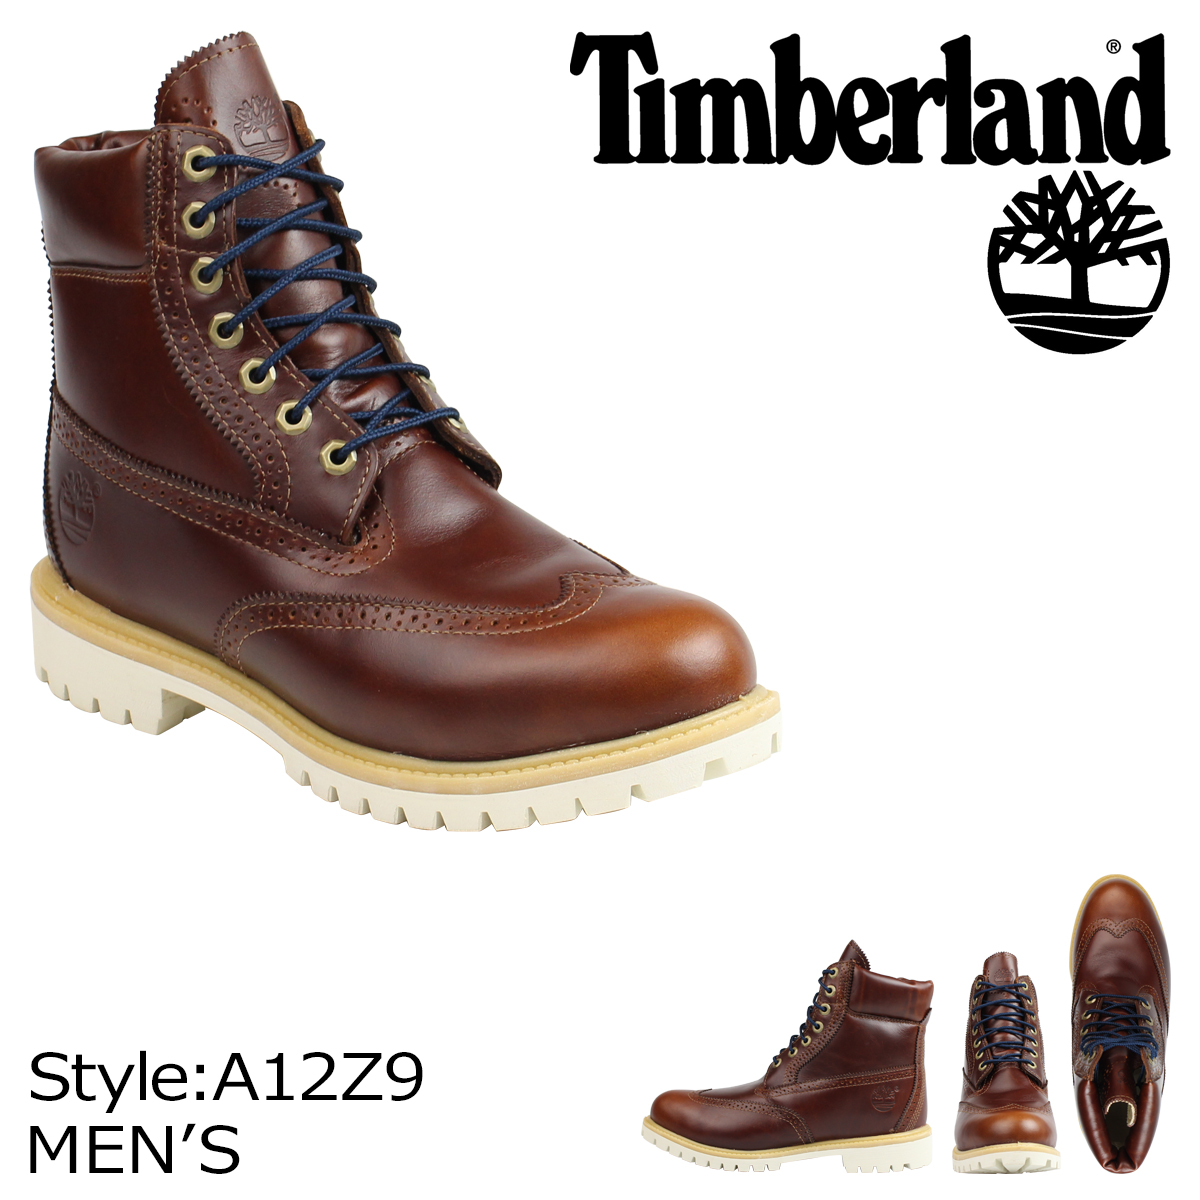 6 inches of Timberland Timberland ICON 6 INCH WATERPROOF BROGUE BOOT boots icons waterproof brogue A12Z9 W Wise Chesnutt men